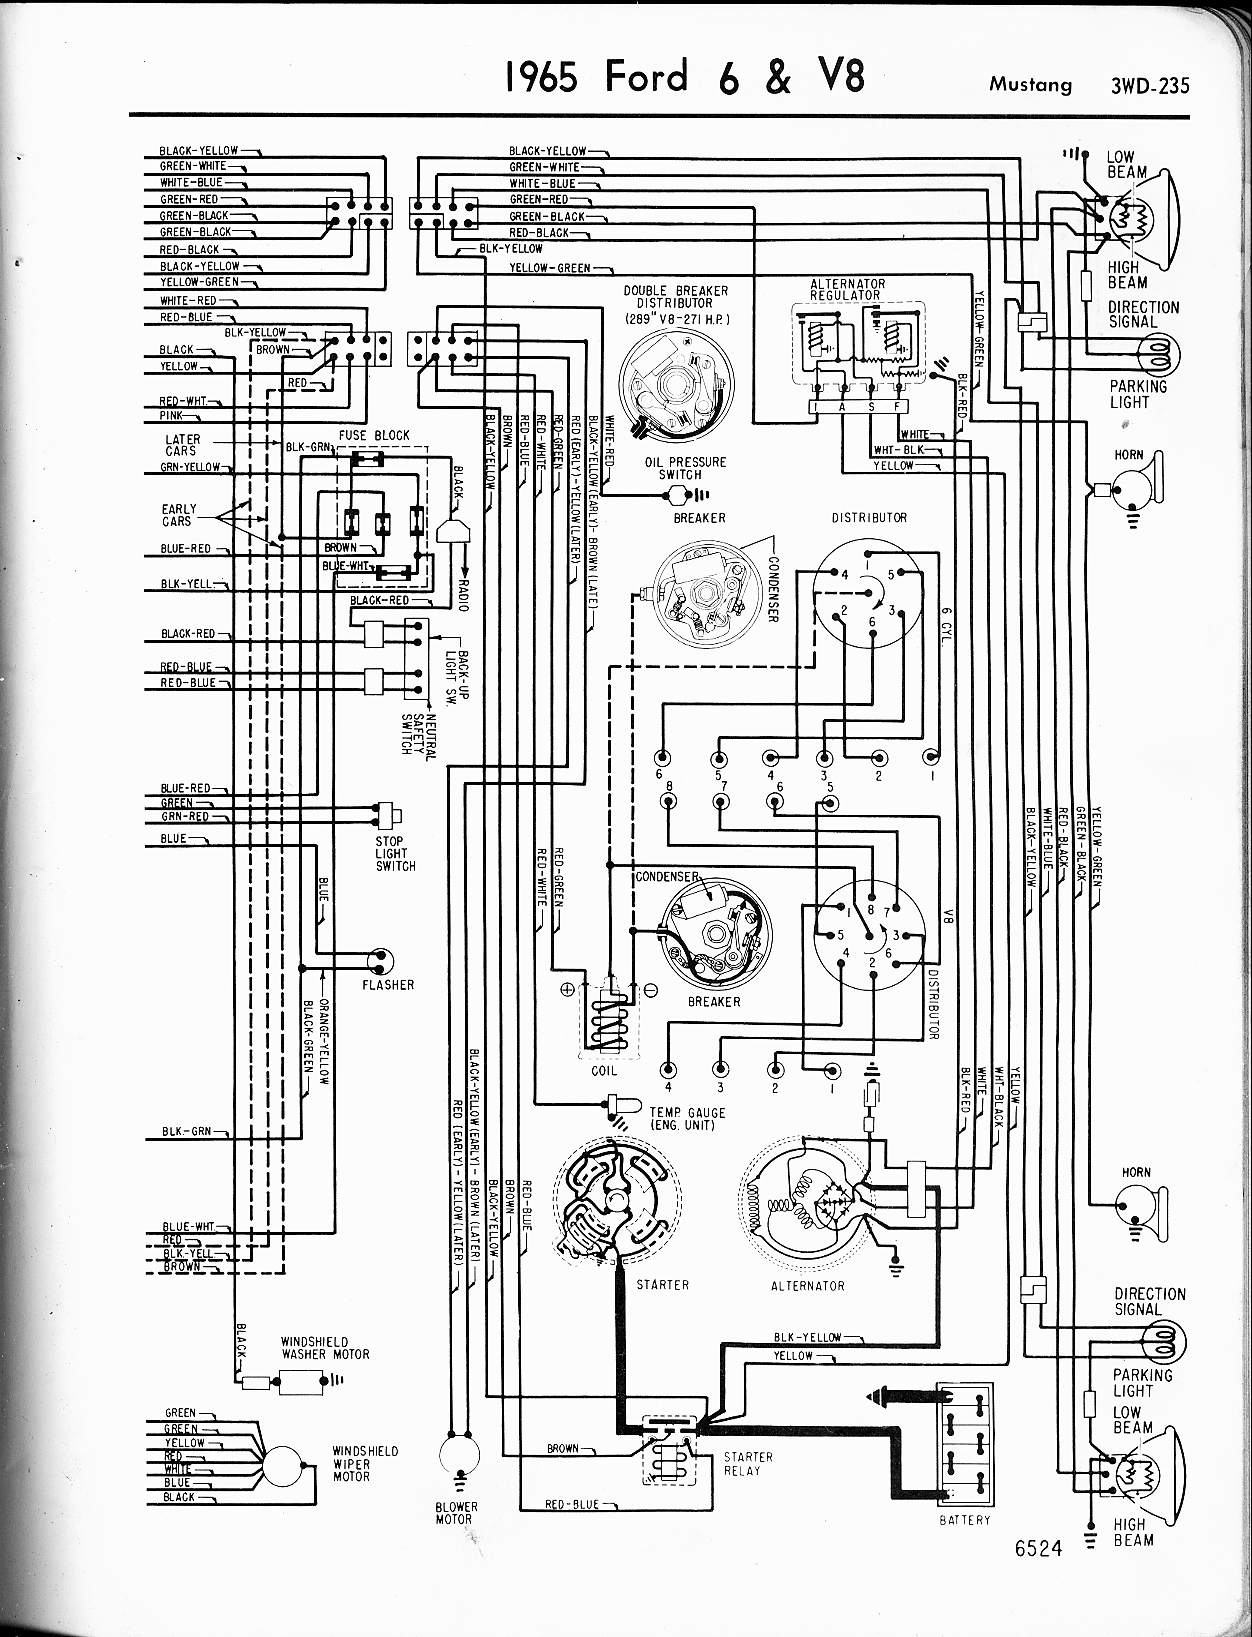 Ford Diagrams Regulator Wiring Diagram On Haynes Repair Manuals 65 Mustang 2 Drawing B